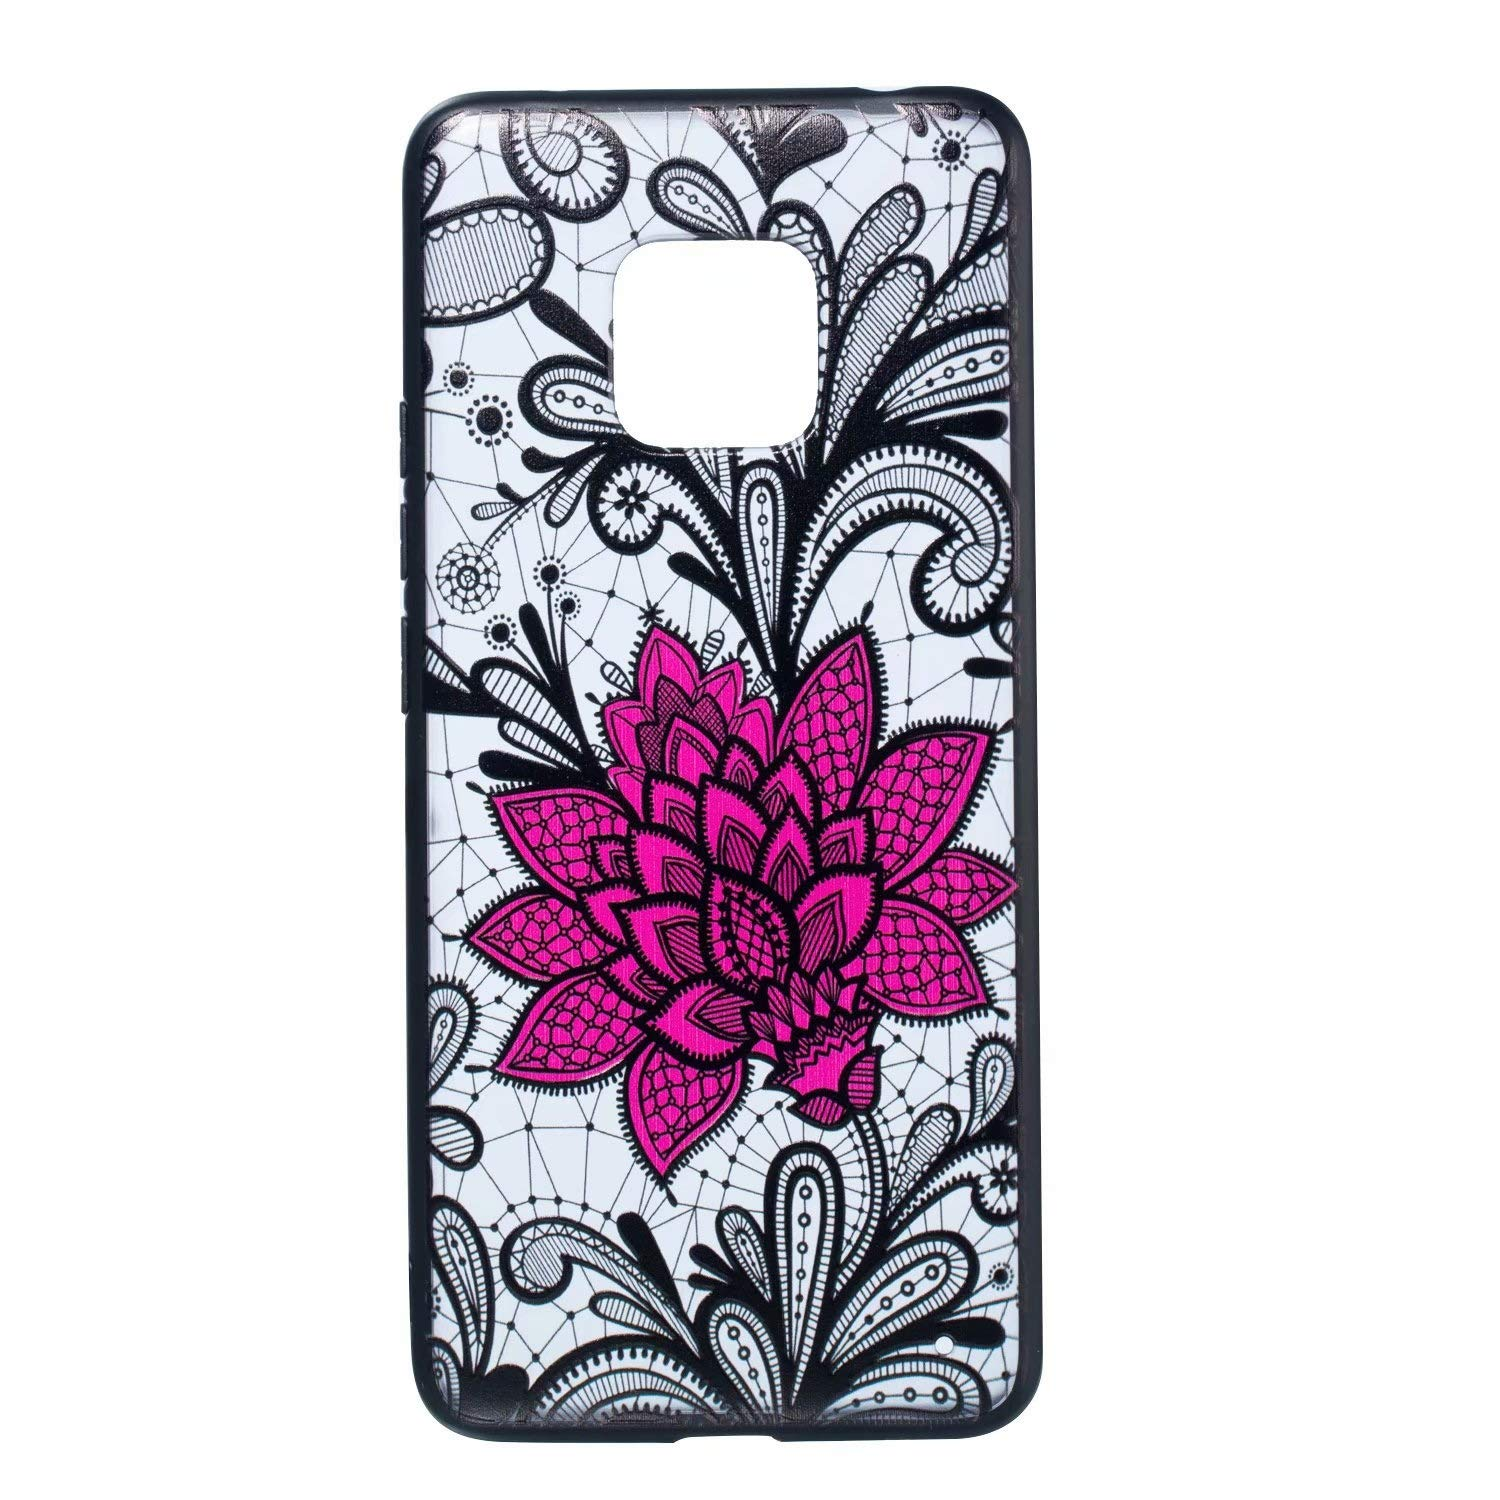 YHUISEN Huawei Mate 20 Pro case, Ultra Slim Relief Lace Flower Hybrid Soft TPU and Matte PC Back Case Cover for Huawei Mate 20 Pro (Pattern : 2)